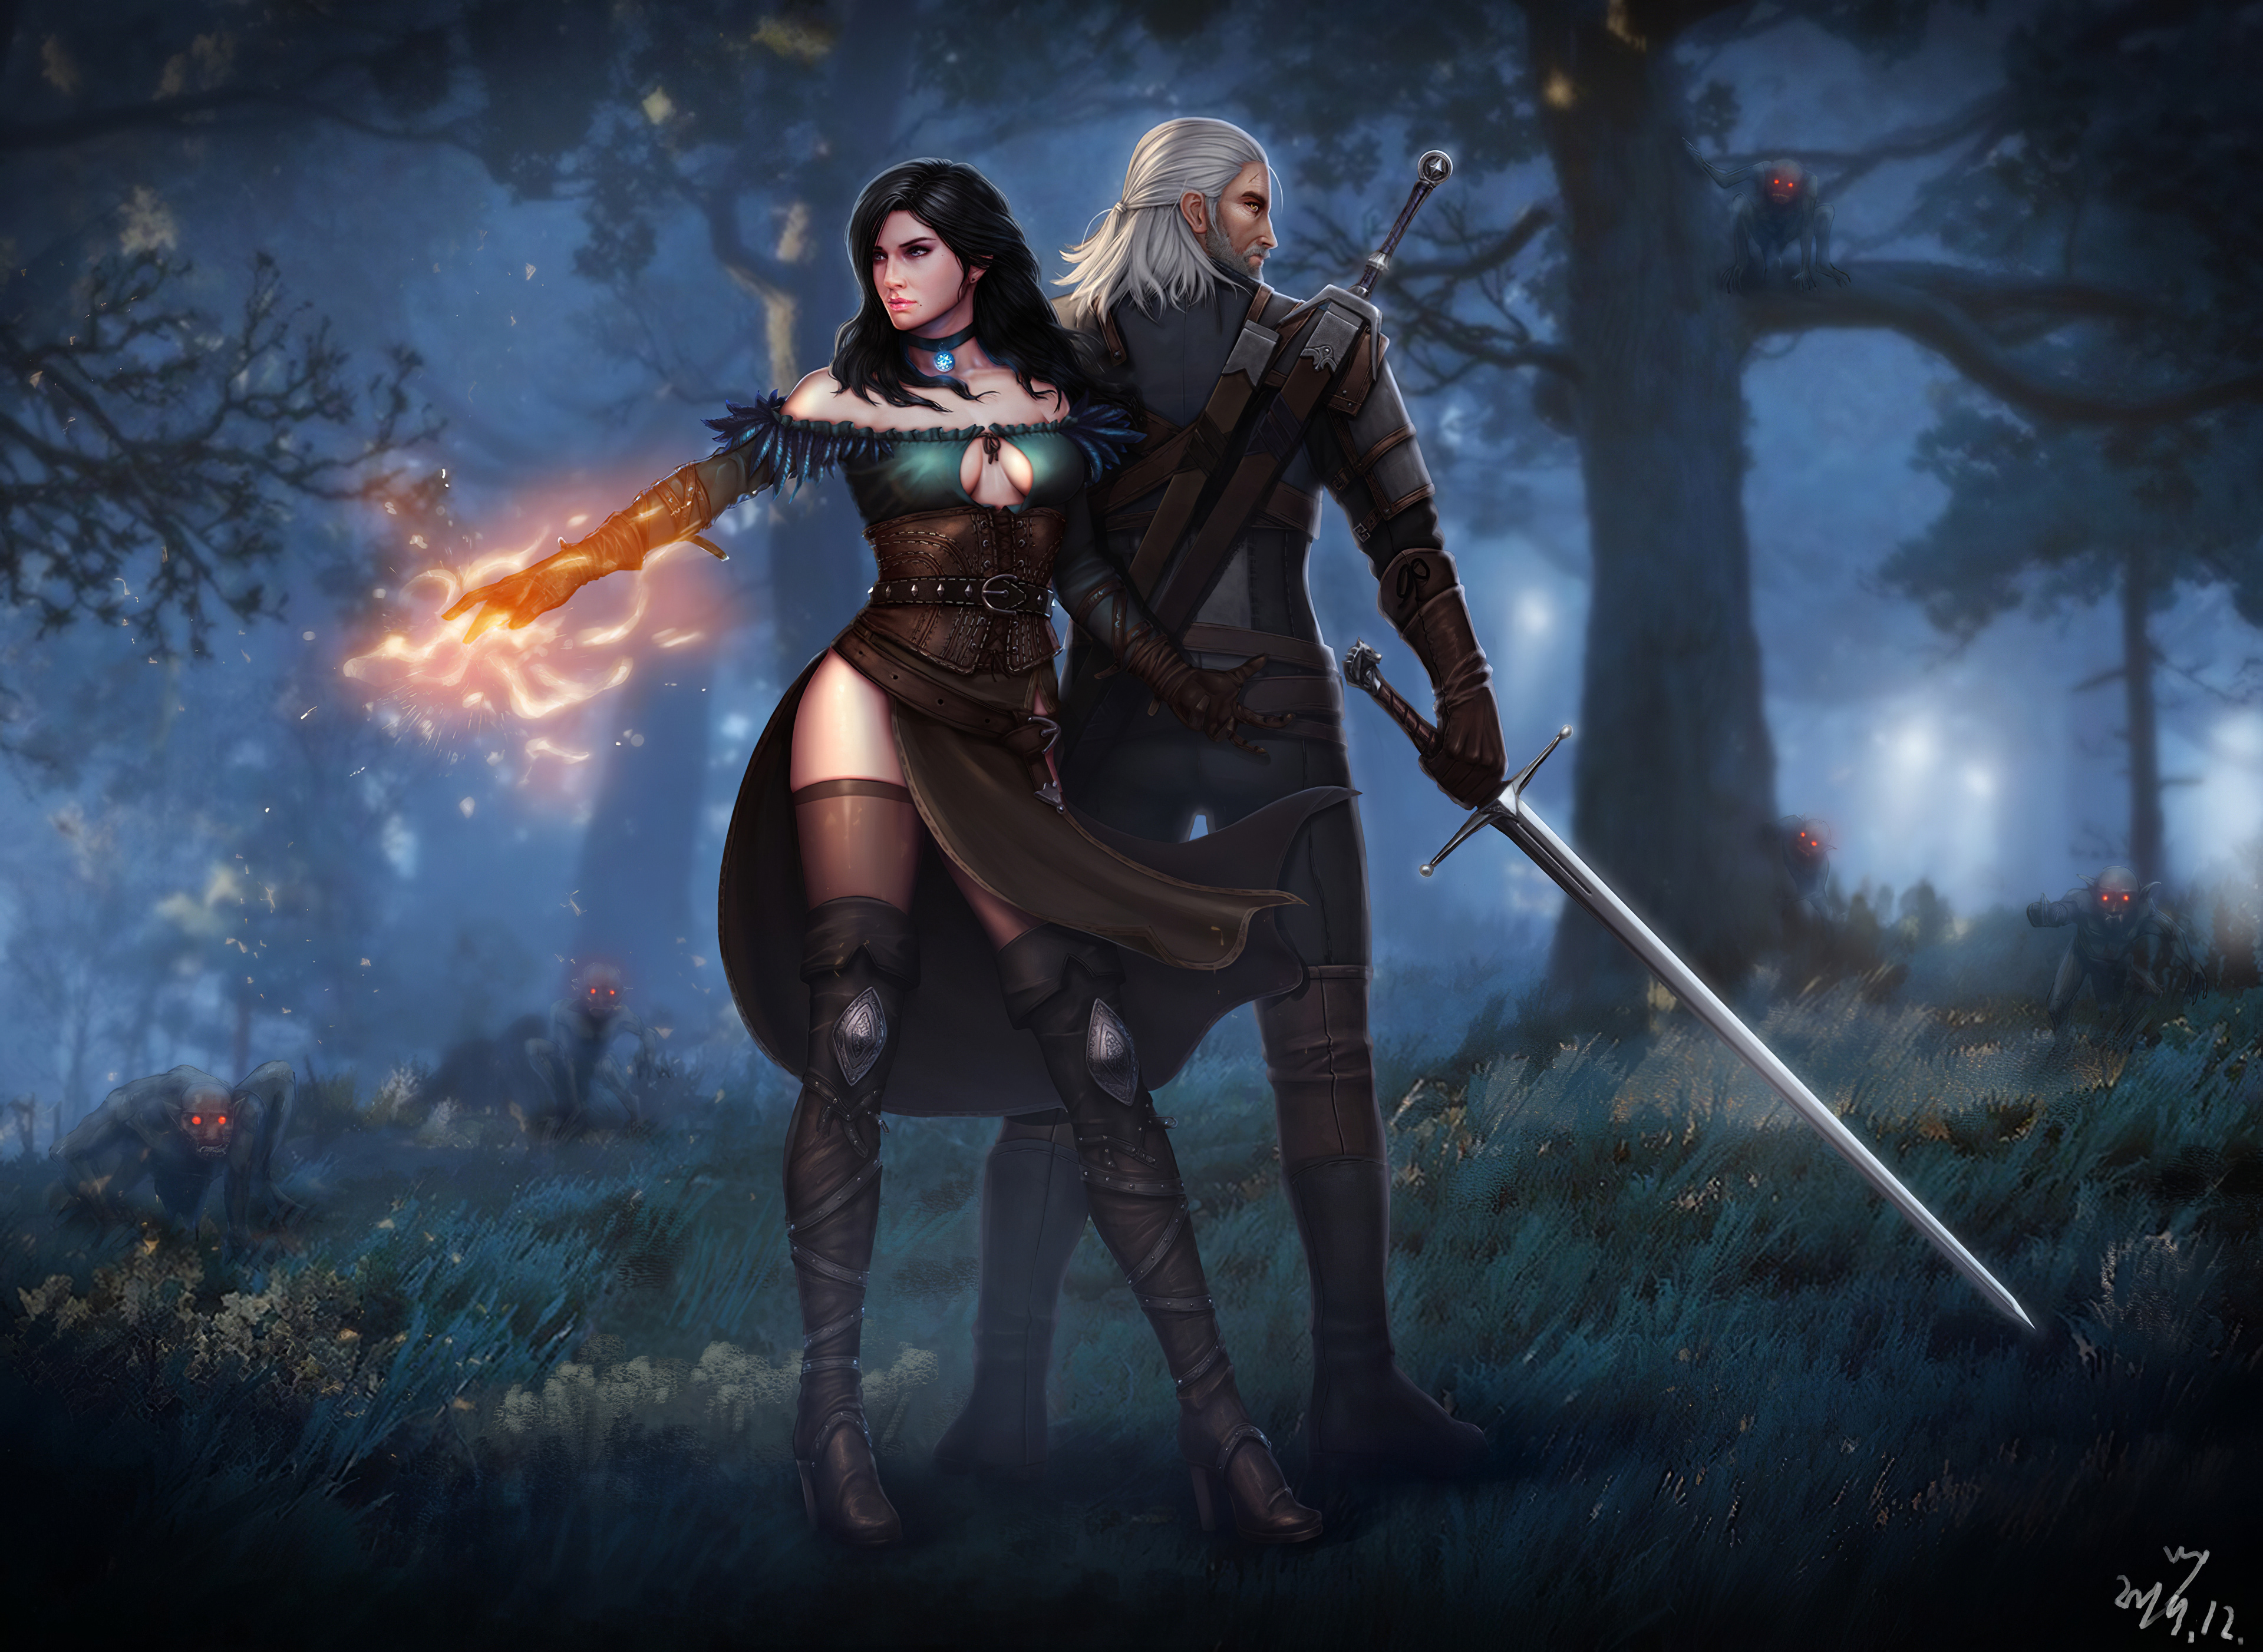 1152x864 Witcher 3 Wild Hunt Geralt Yen And Ciri 4k 1152x864 Resolution Hd 4k Wallpapers Images Backgrounds Photos And Pictures